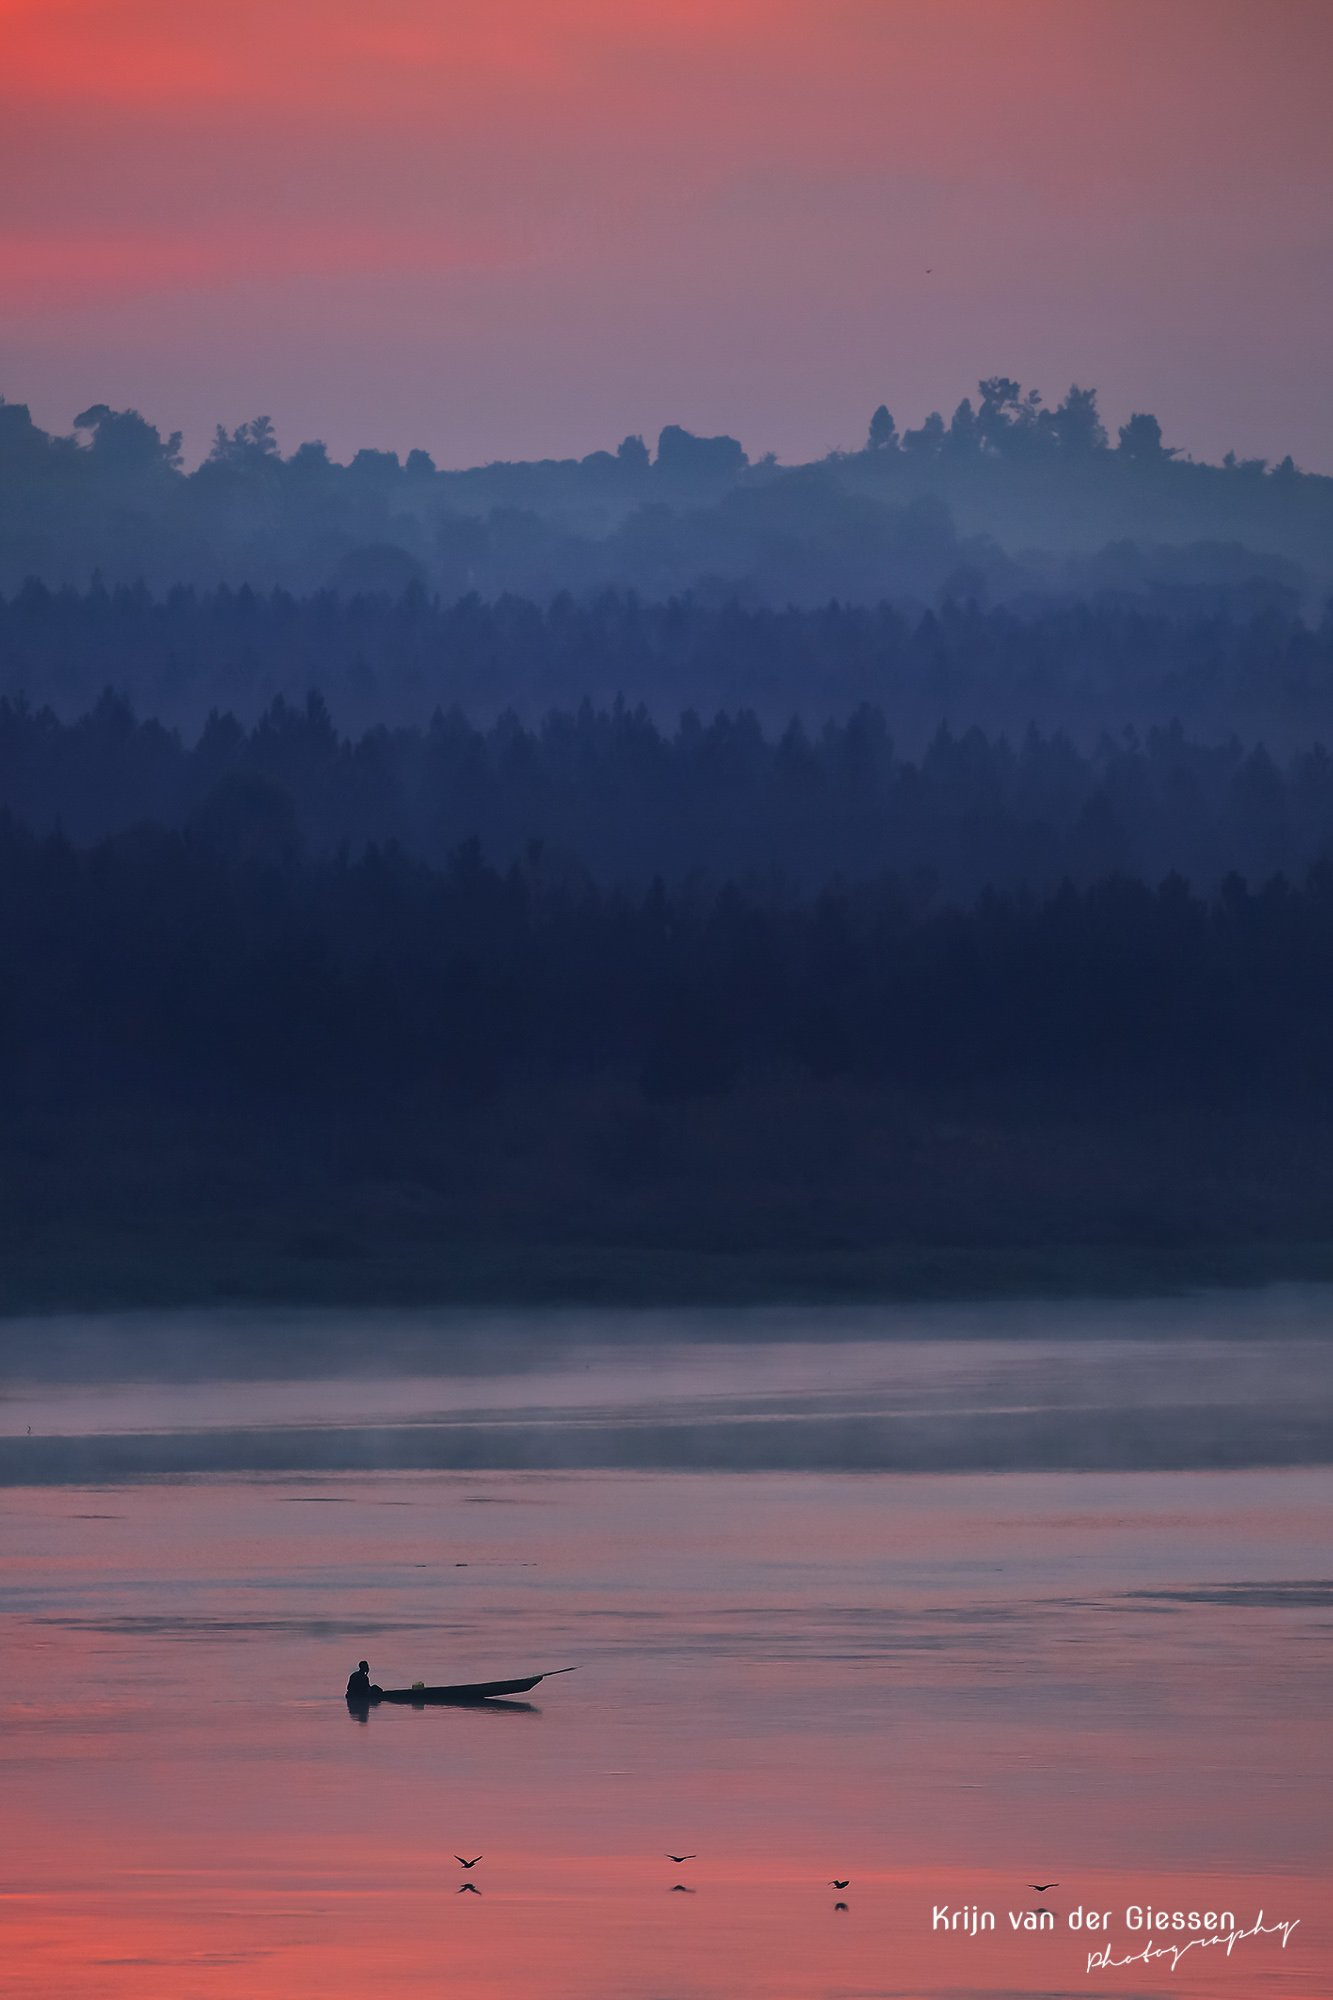 Pastel sunrise over river Nile with fisherman and low flying birds copyright by krijn van der Giessen Photography